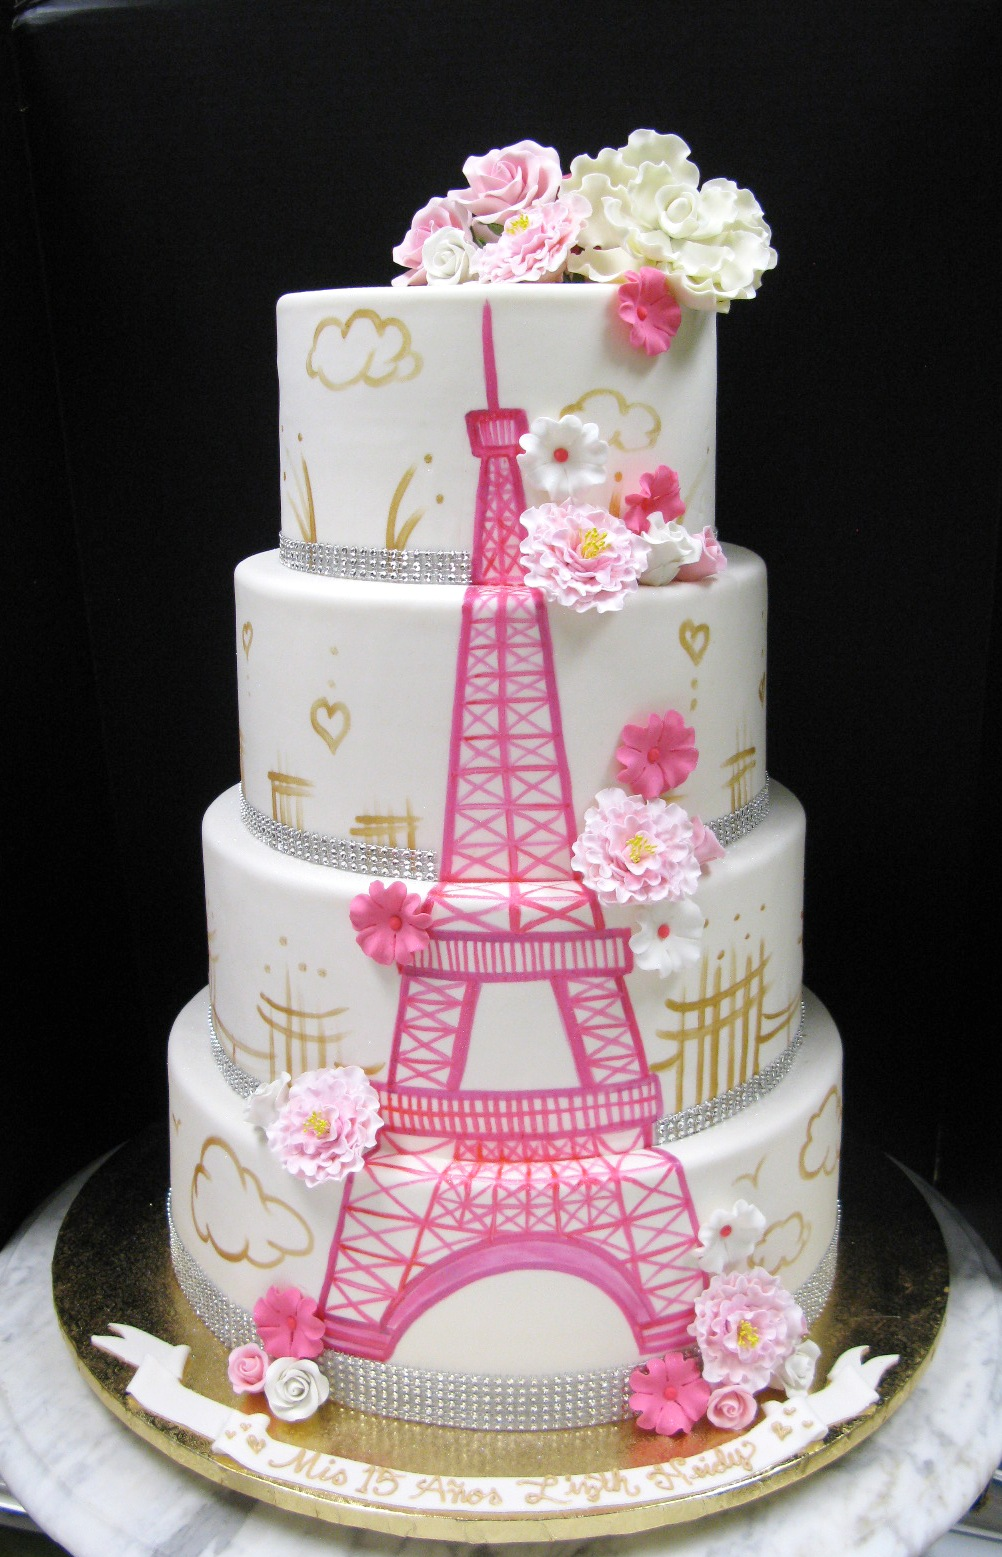 Hand-painted Eiffel Tower